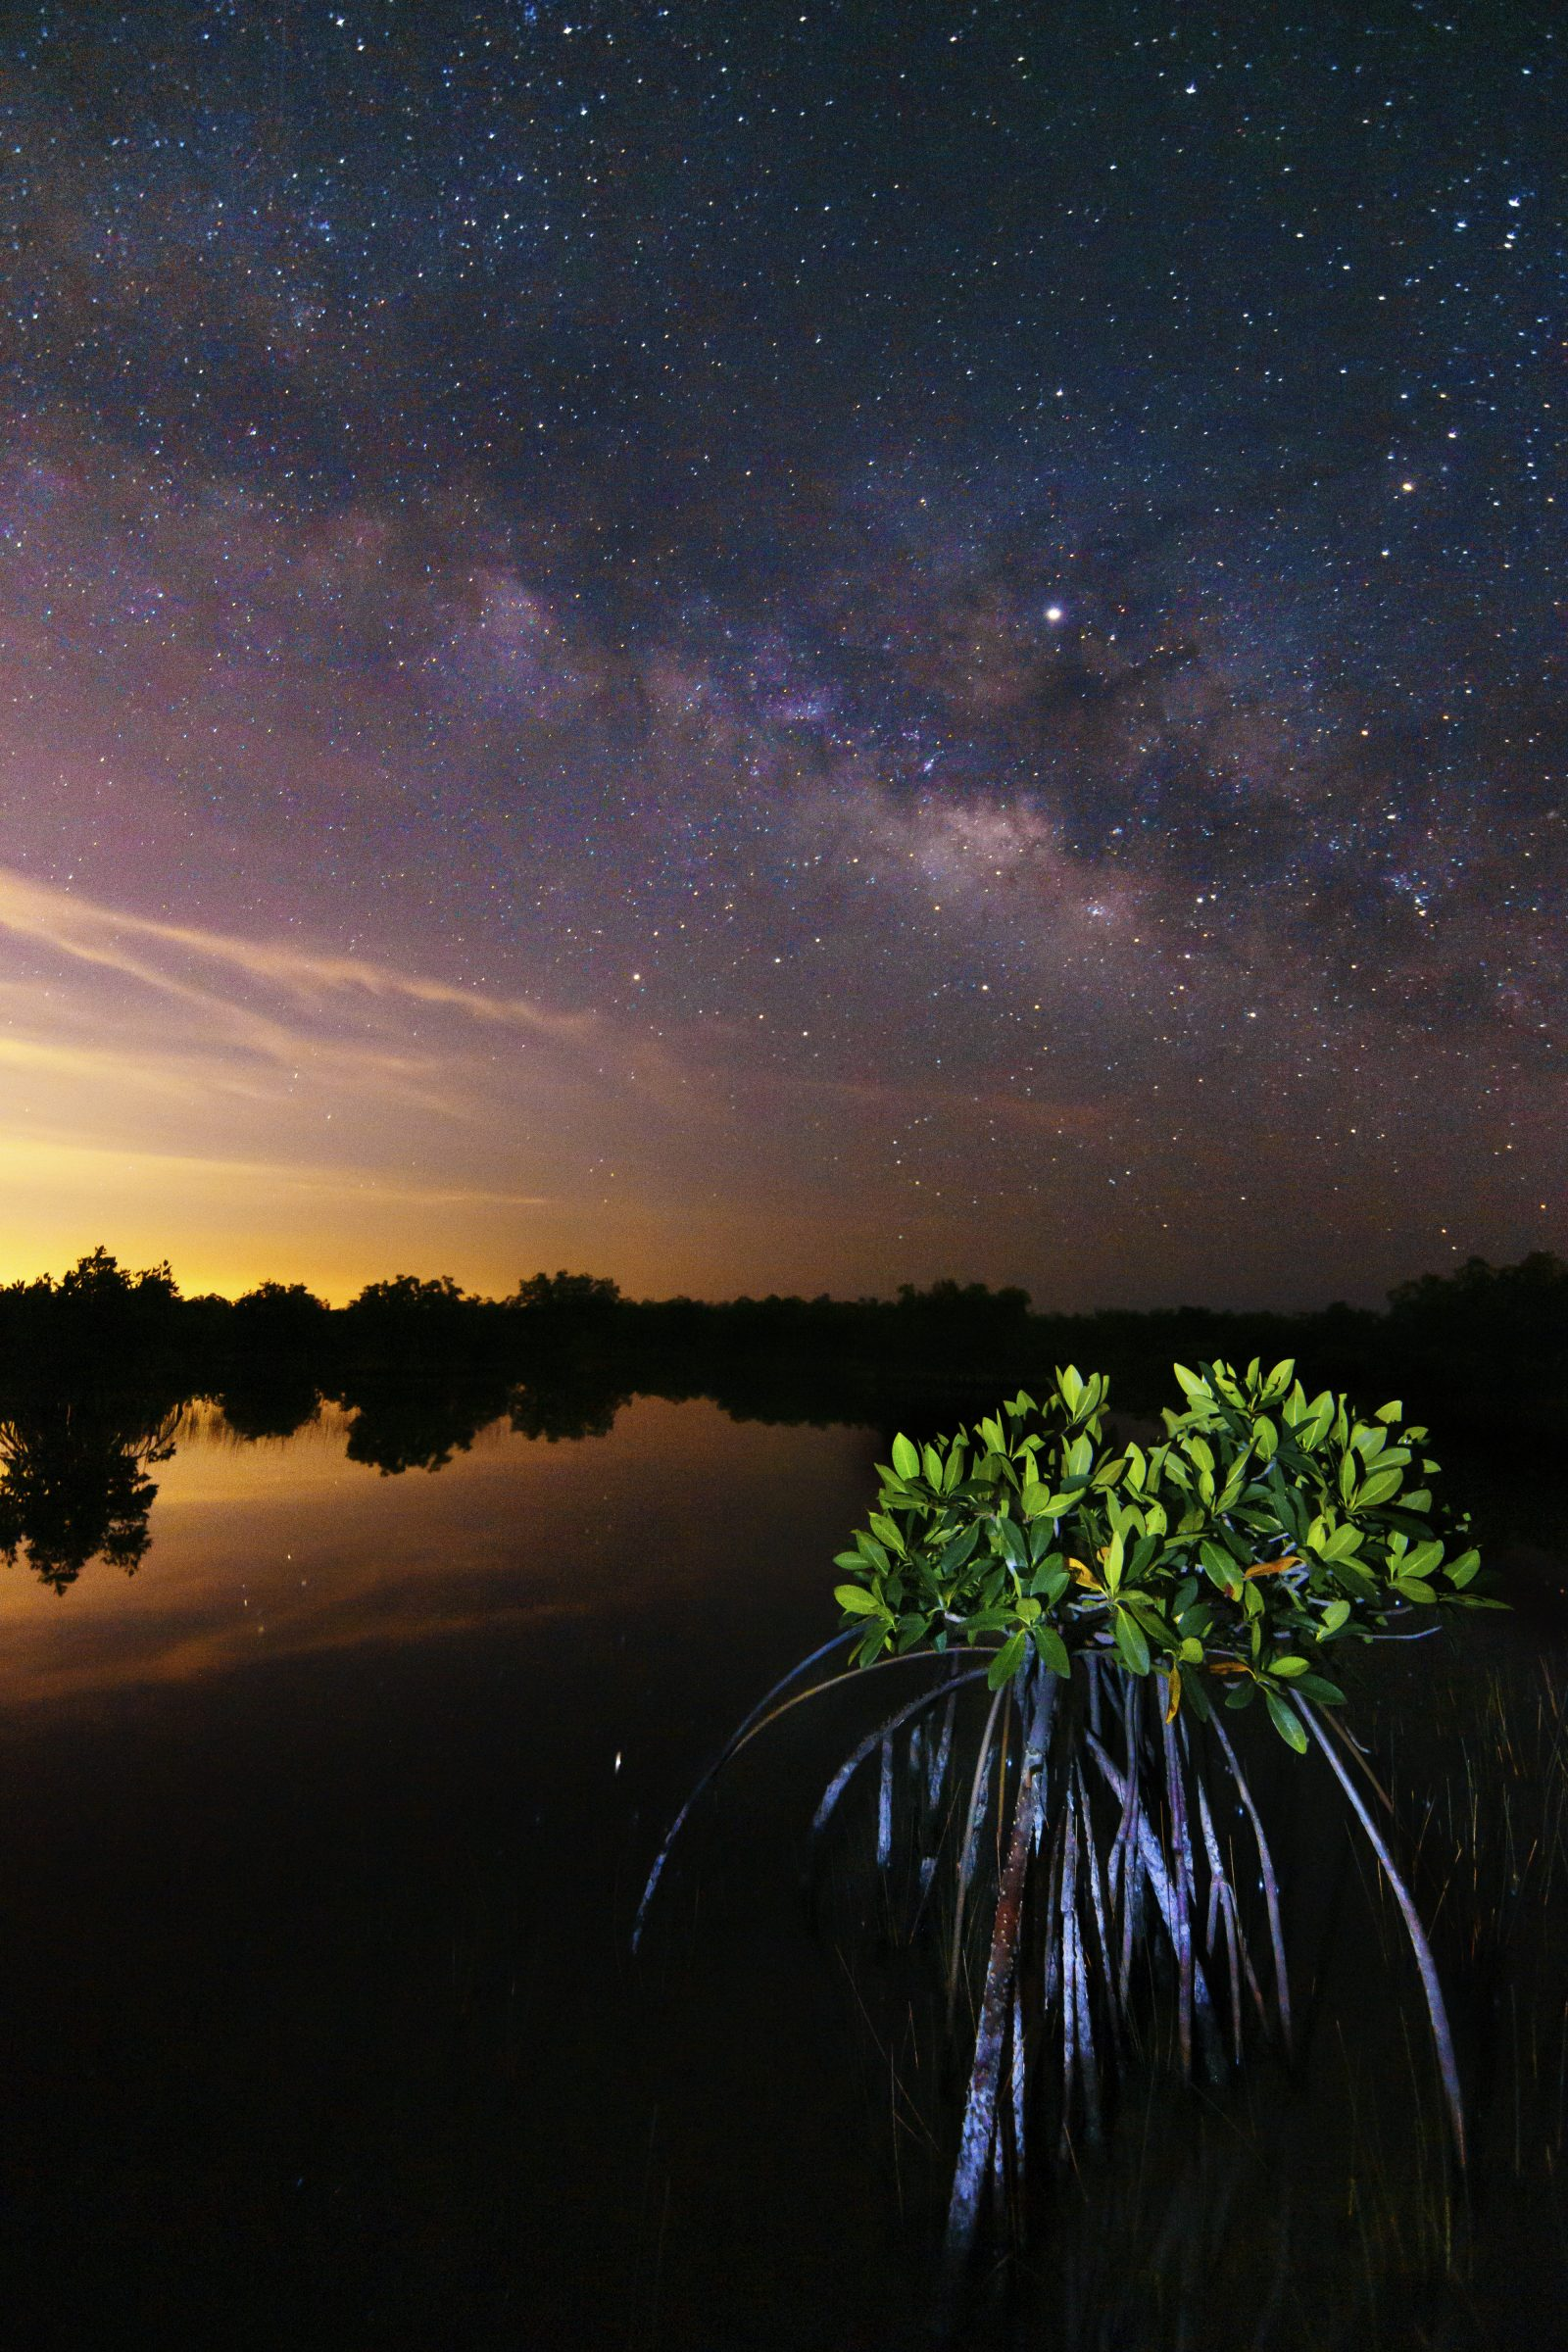 Mangrove under the Milky Way